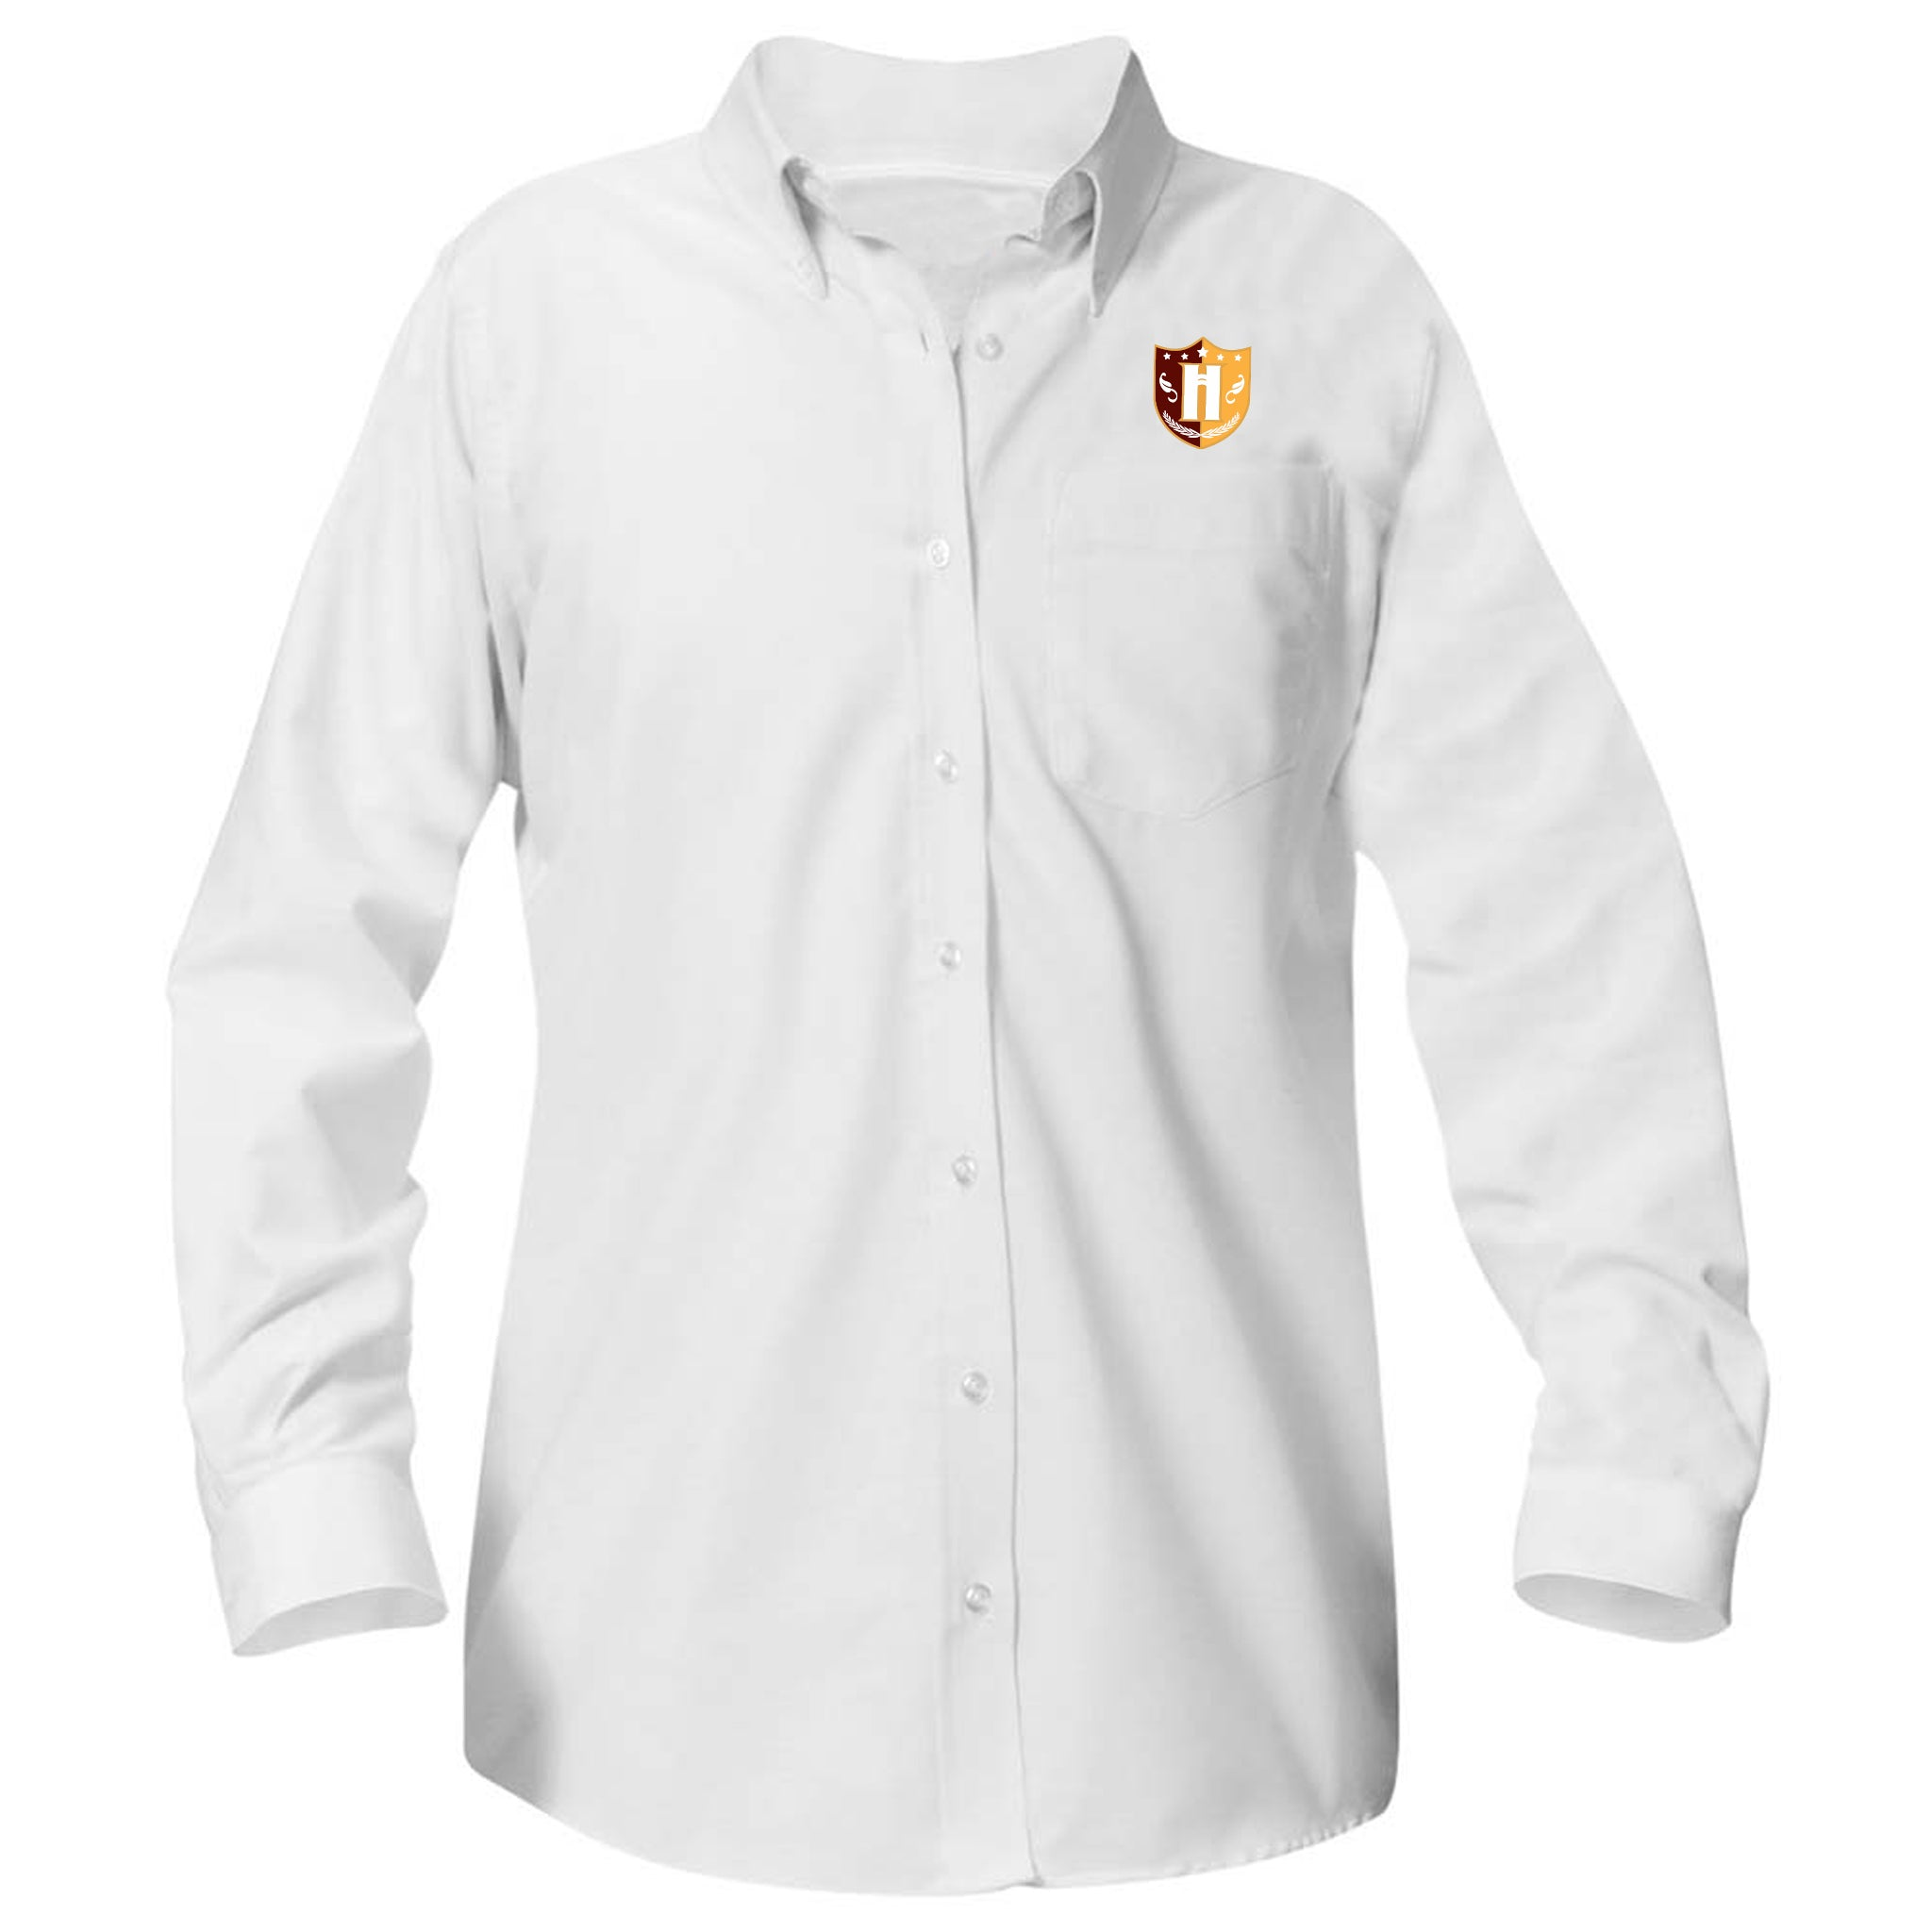 Capital Prep Harlem Long Sleeve Girls Oxford